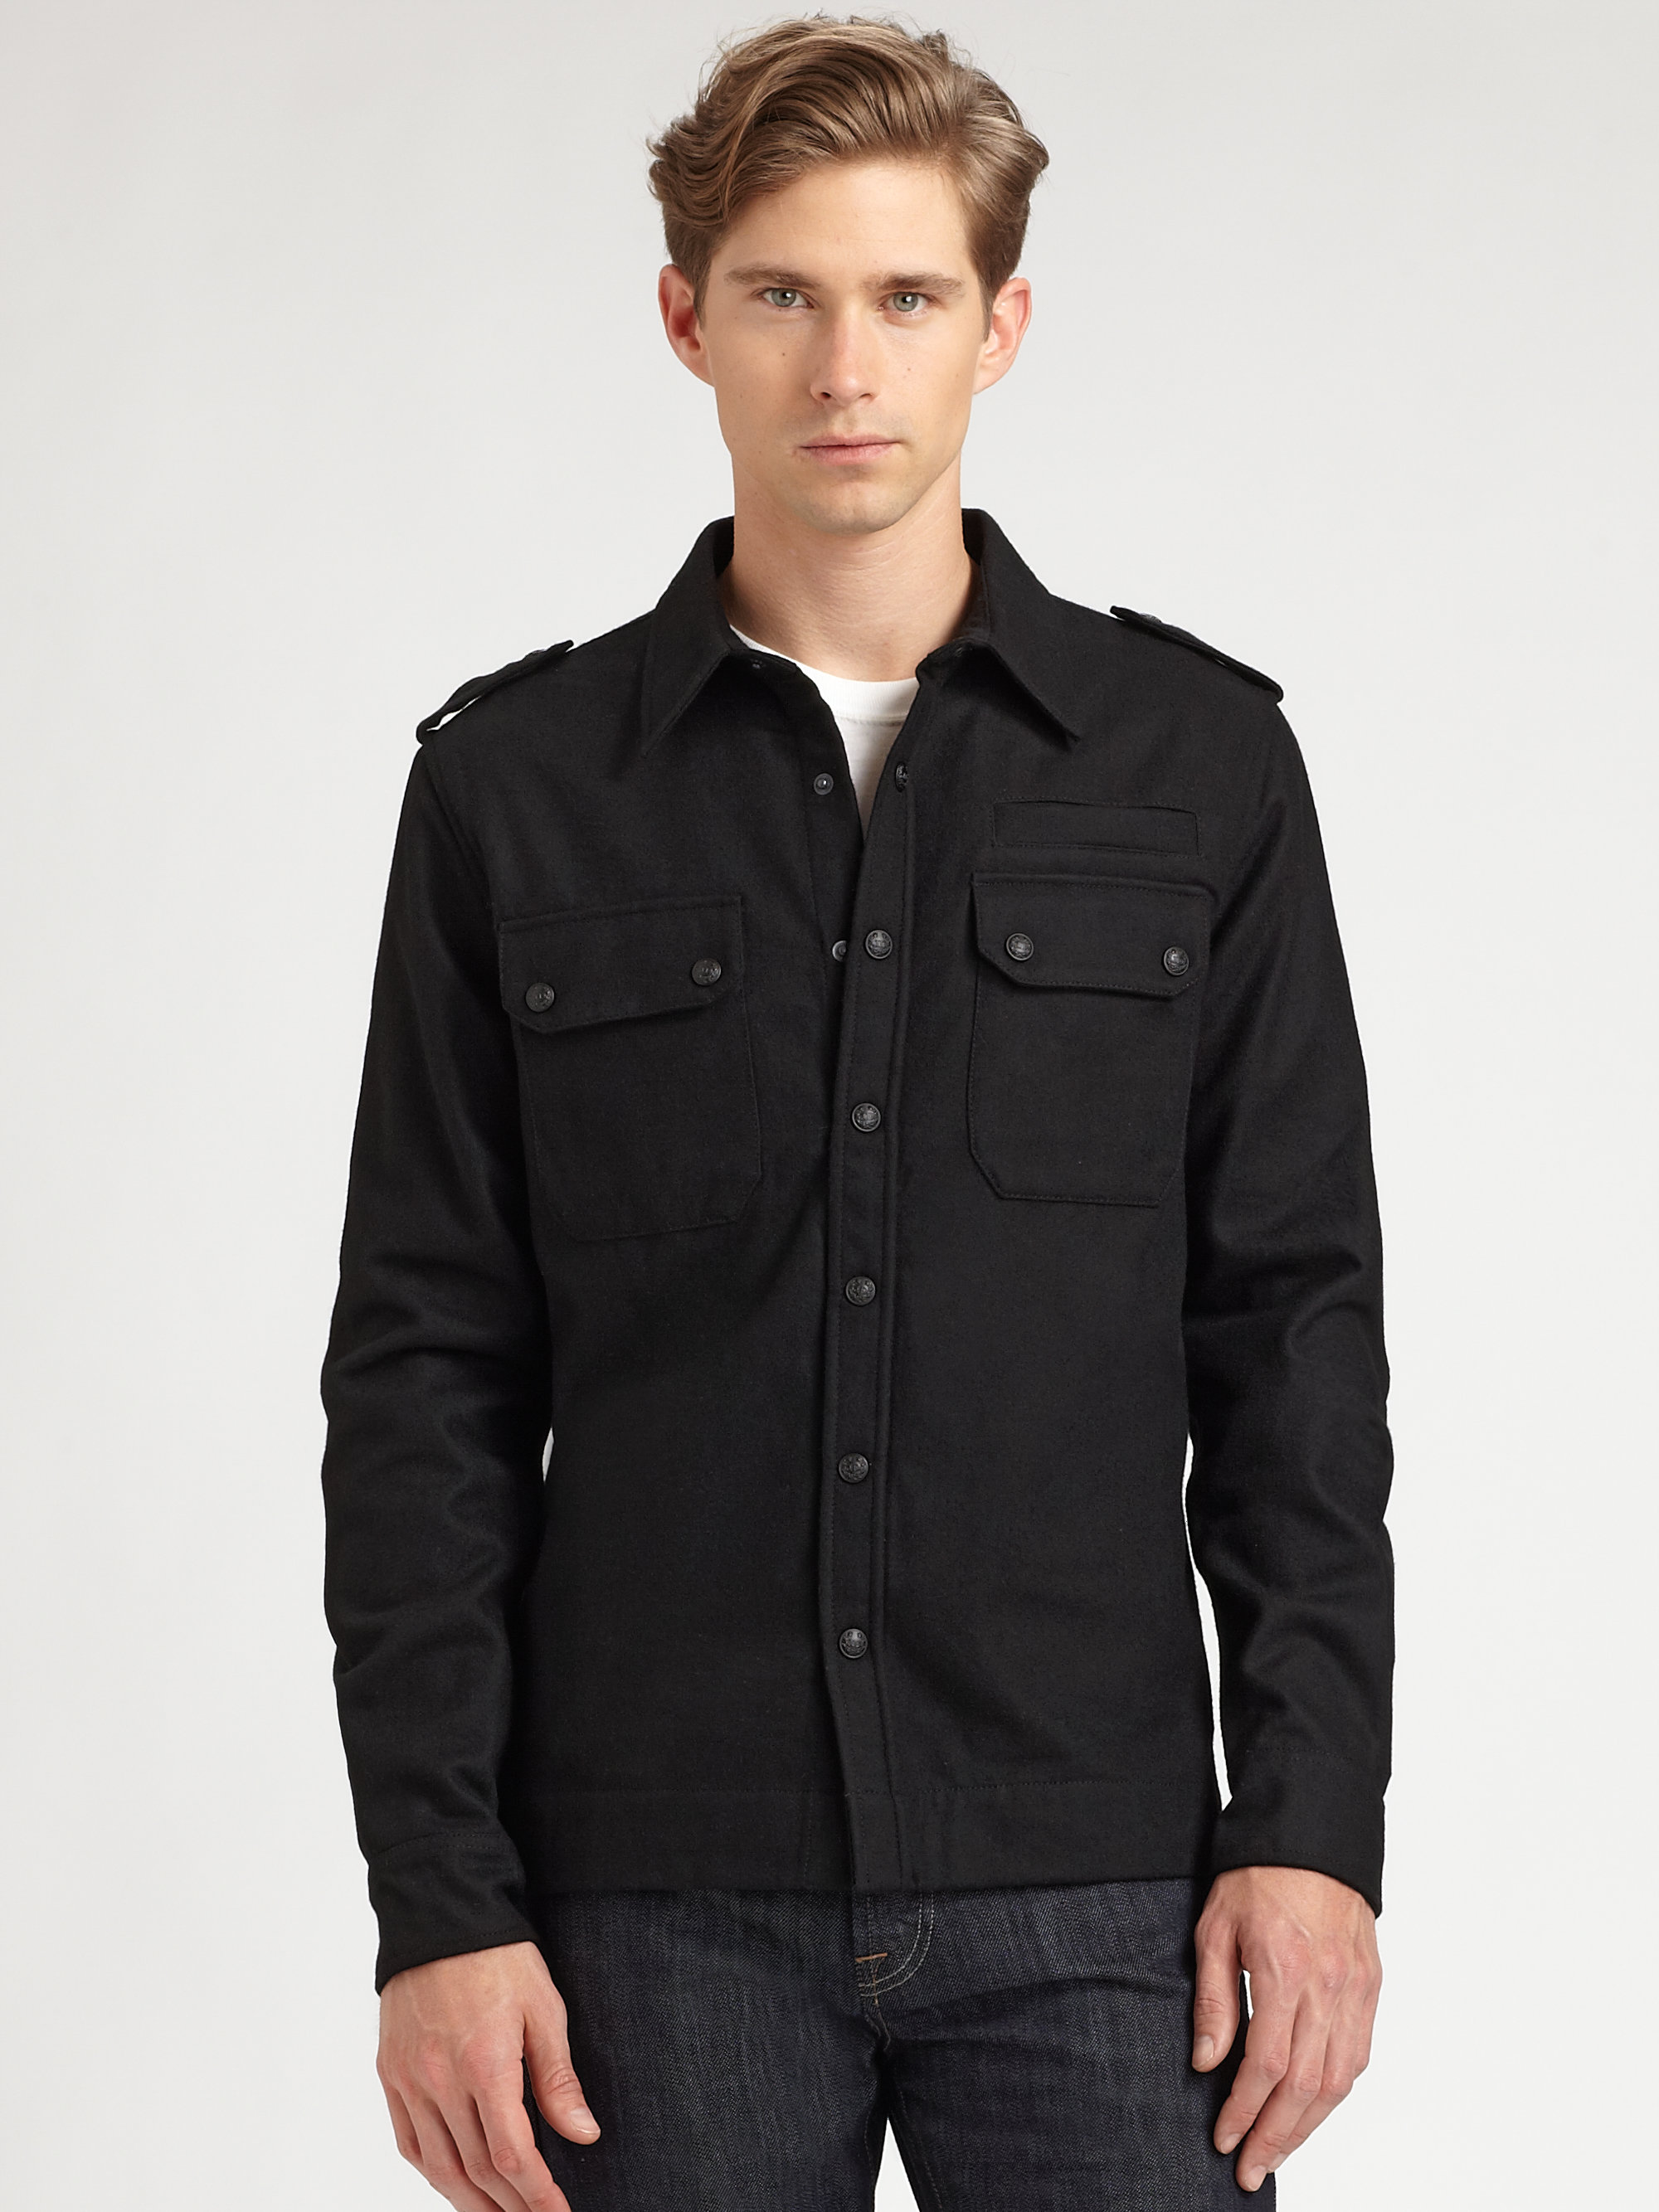 Black Shirt Jacket | Outdoor Jacket